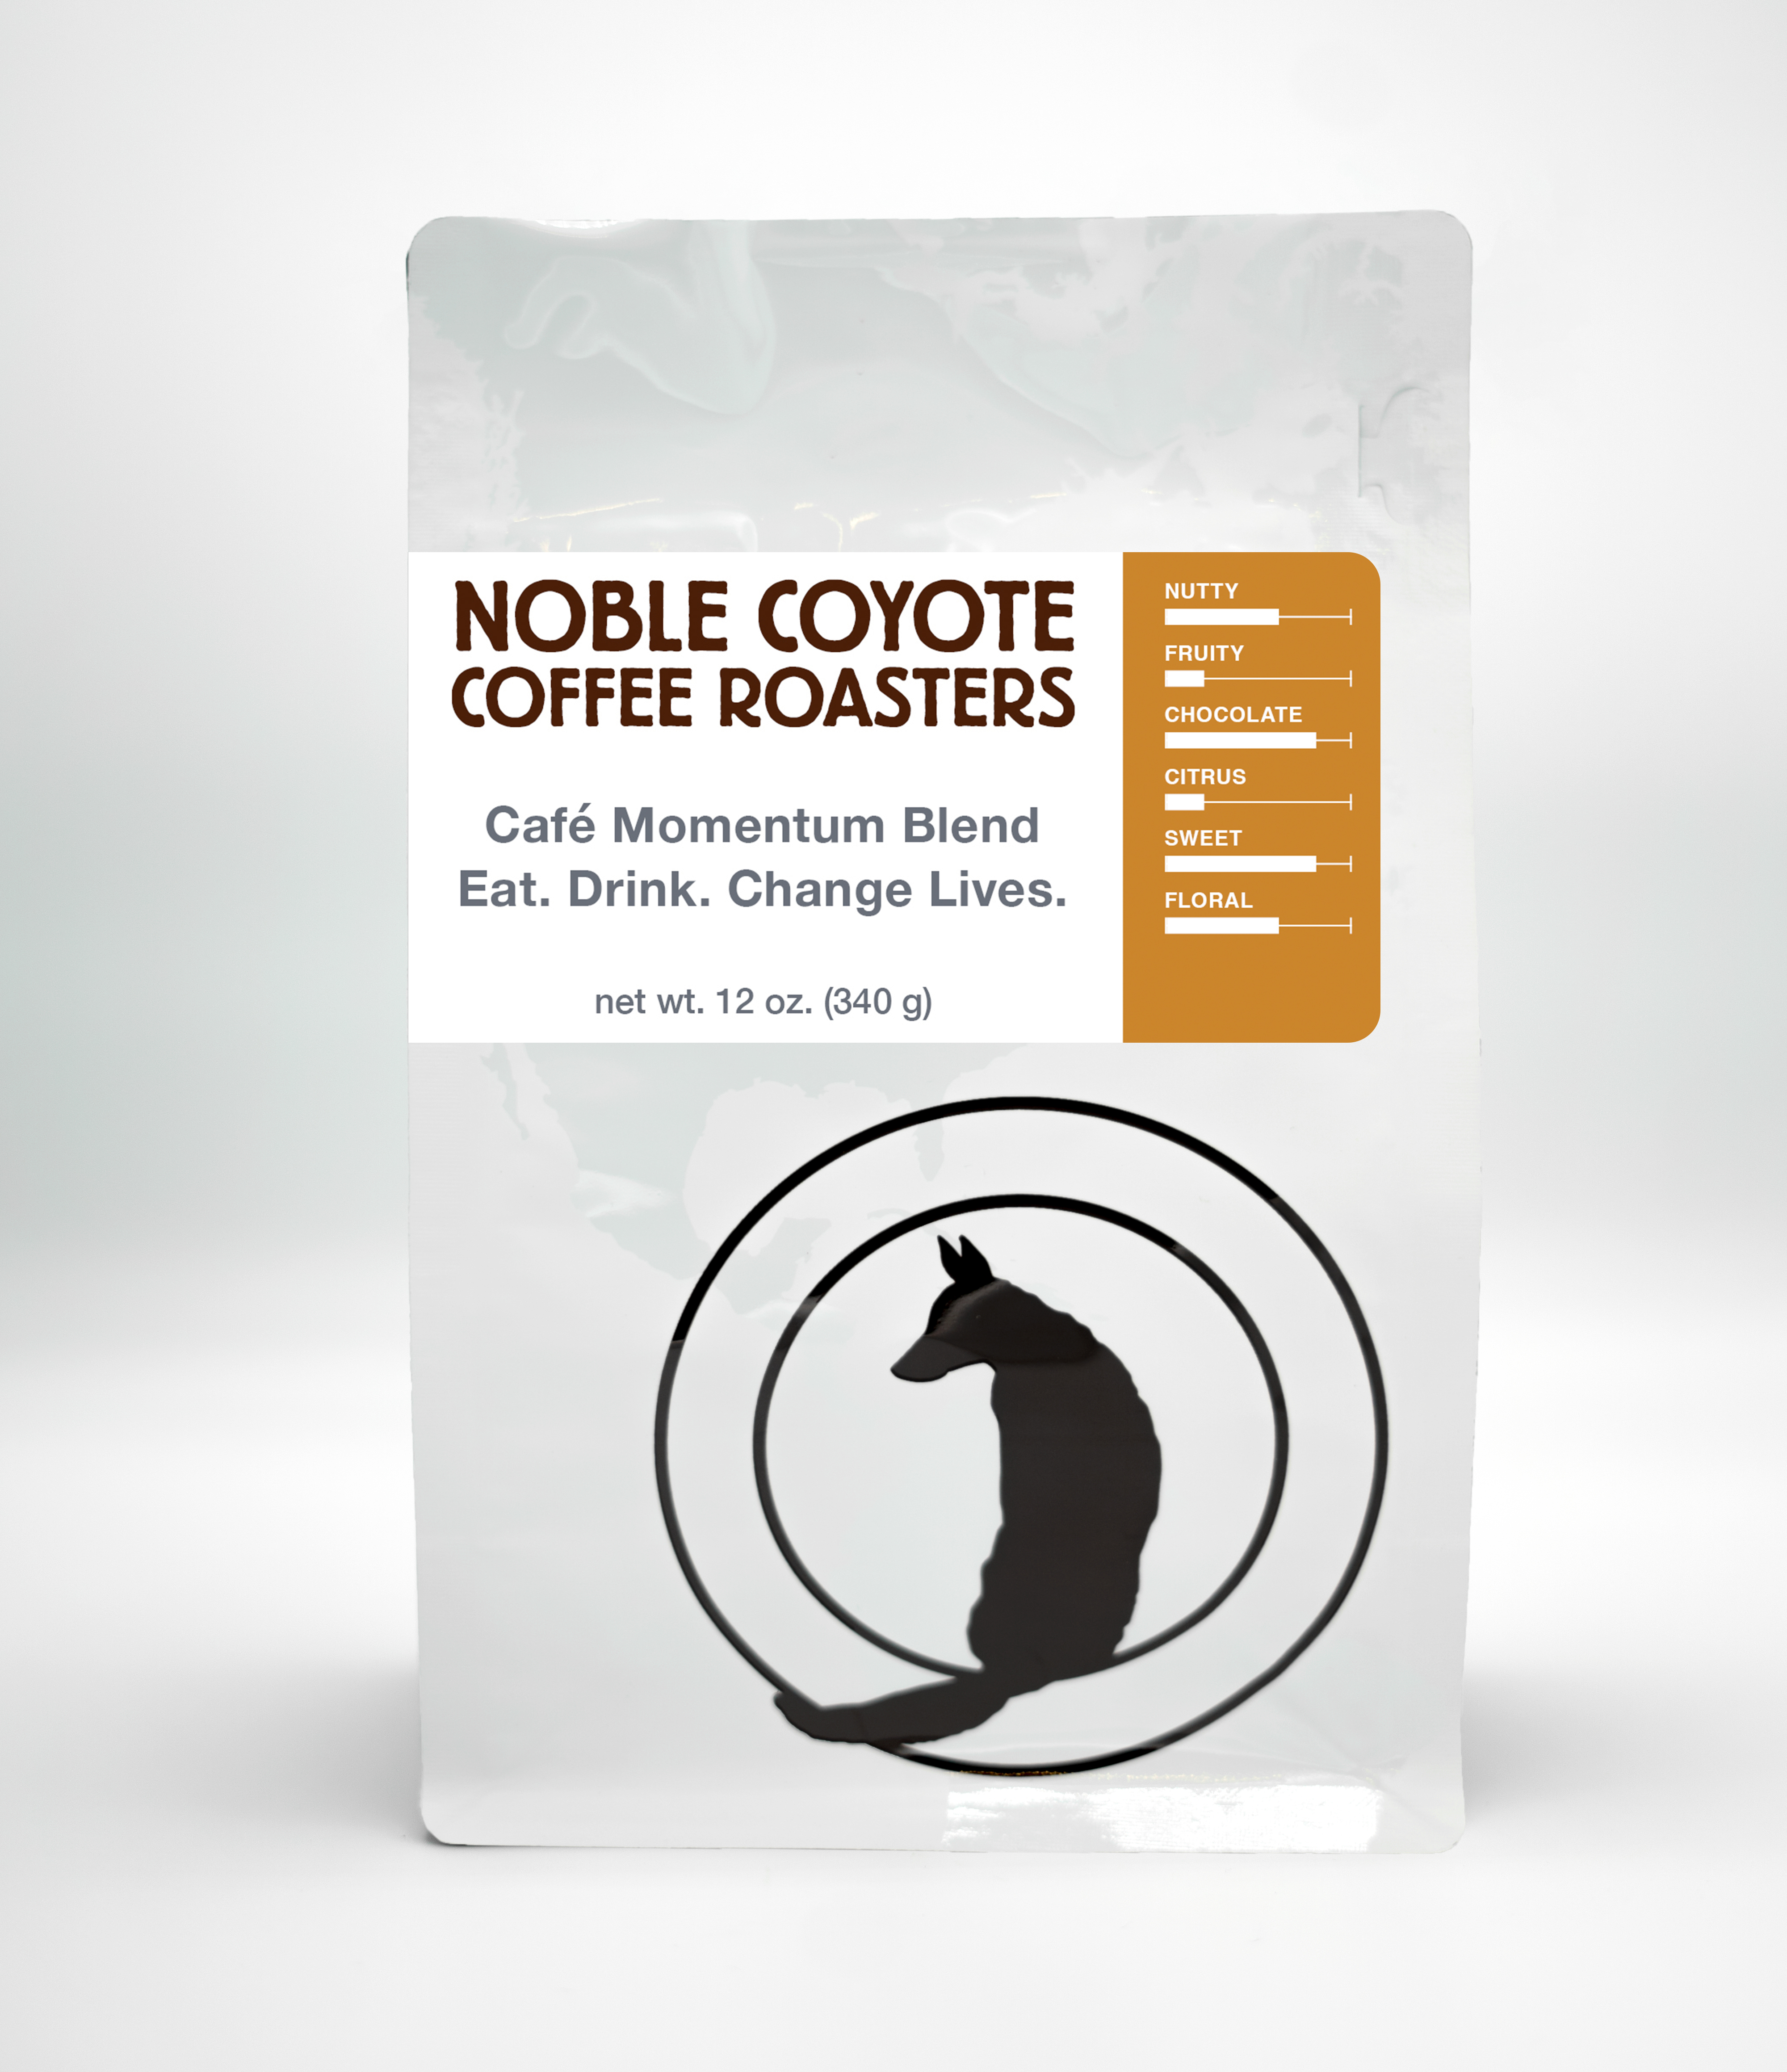 Café Momentum from Noble Coyote Coffee Roasters